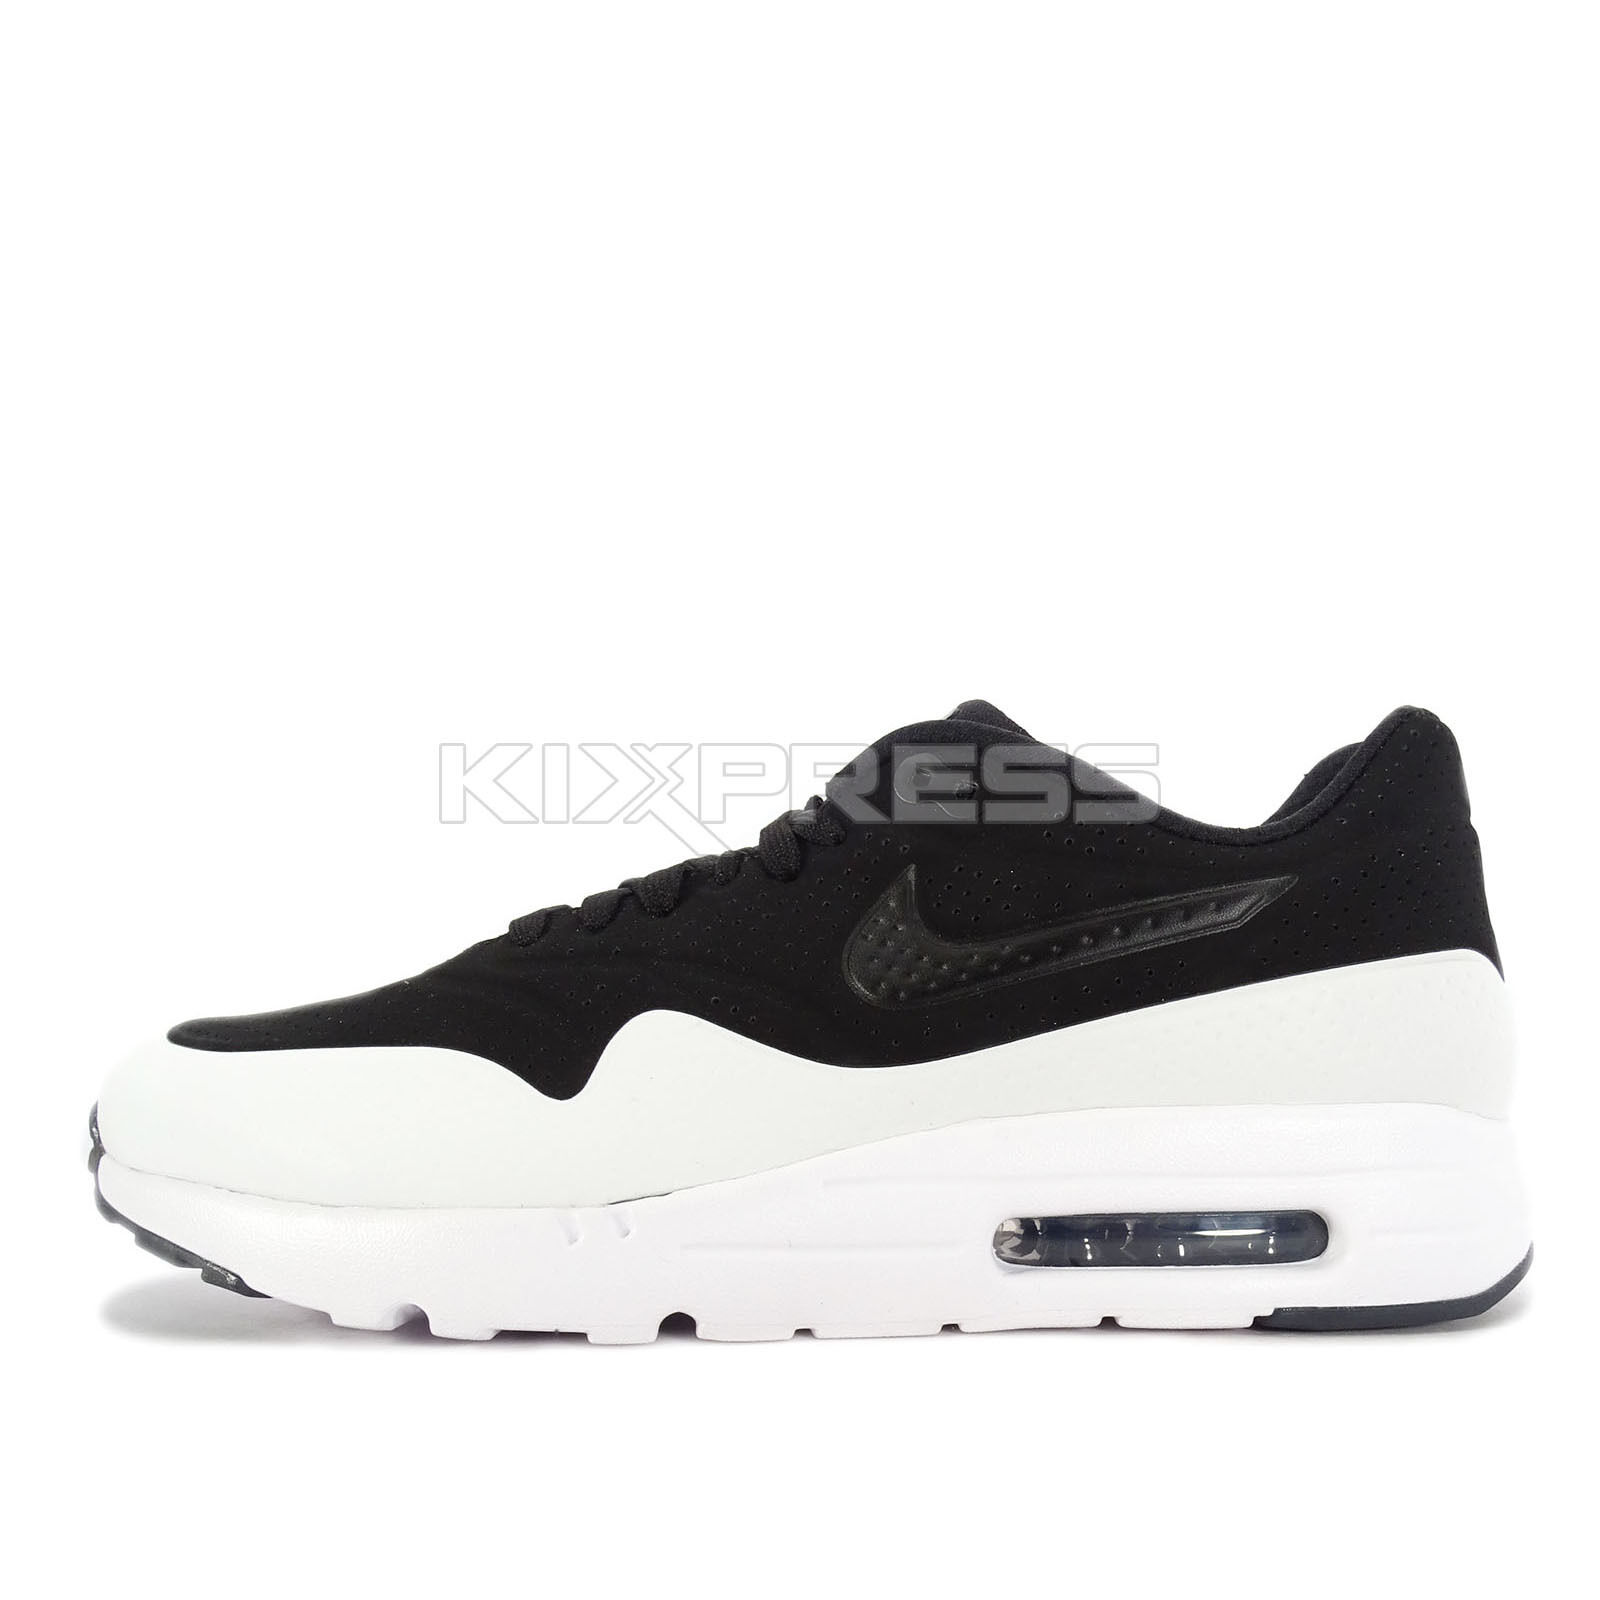 nike air max 1 ultra moire black white ebay usa